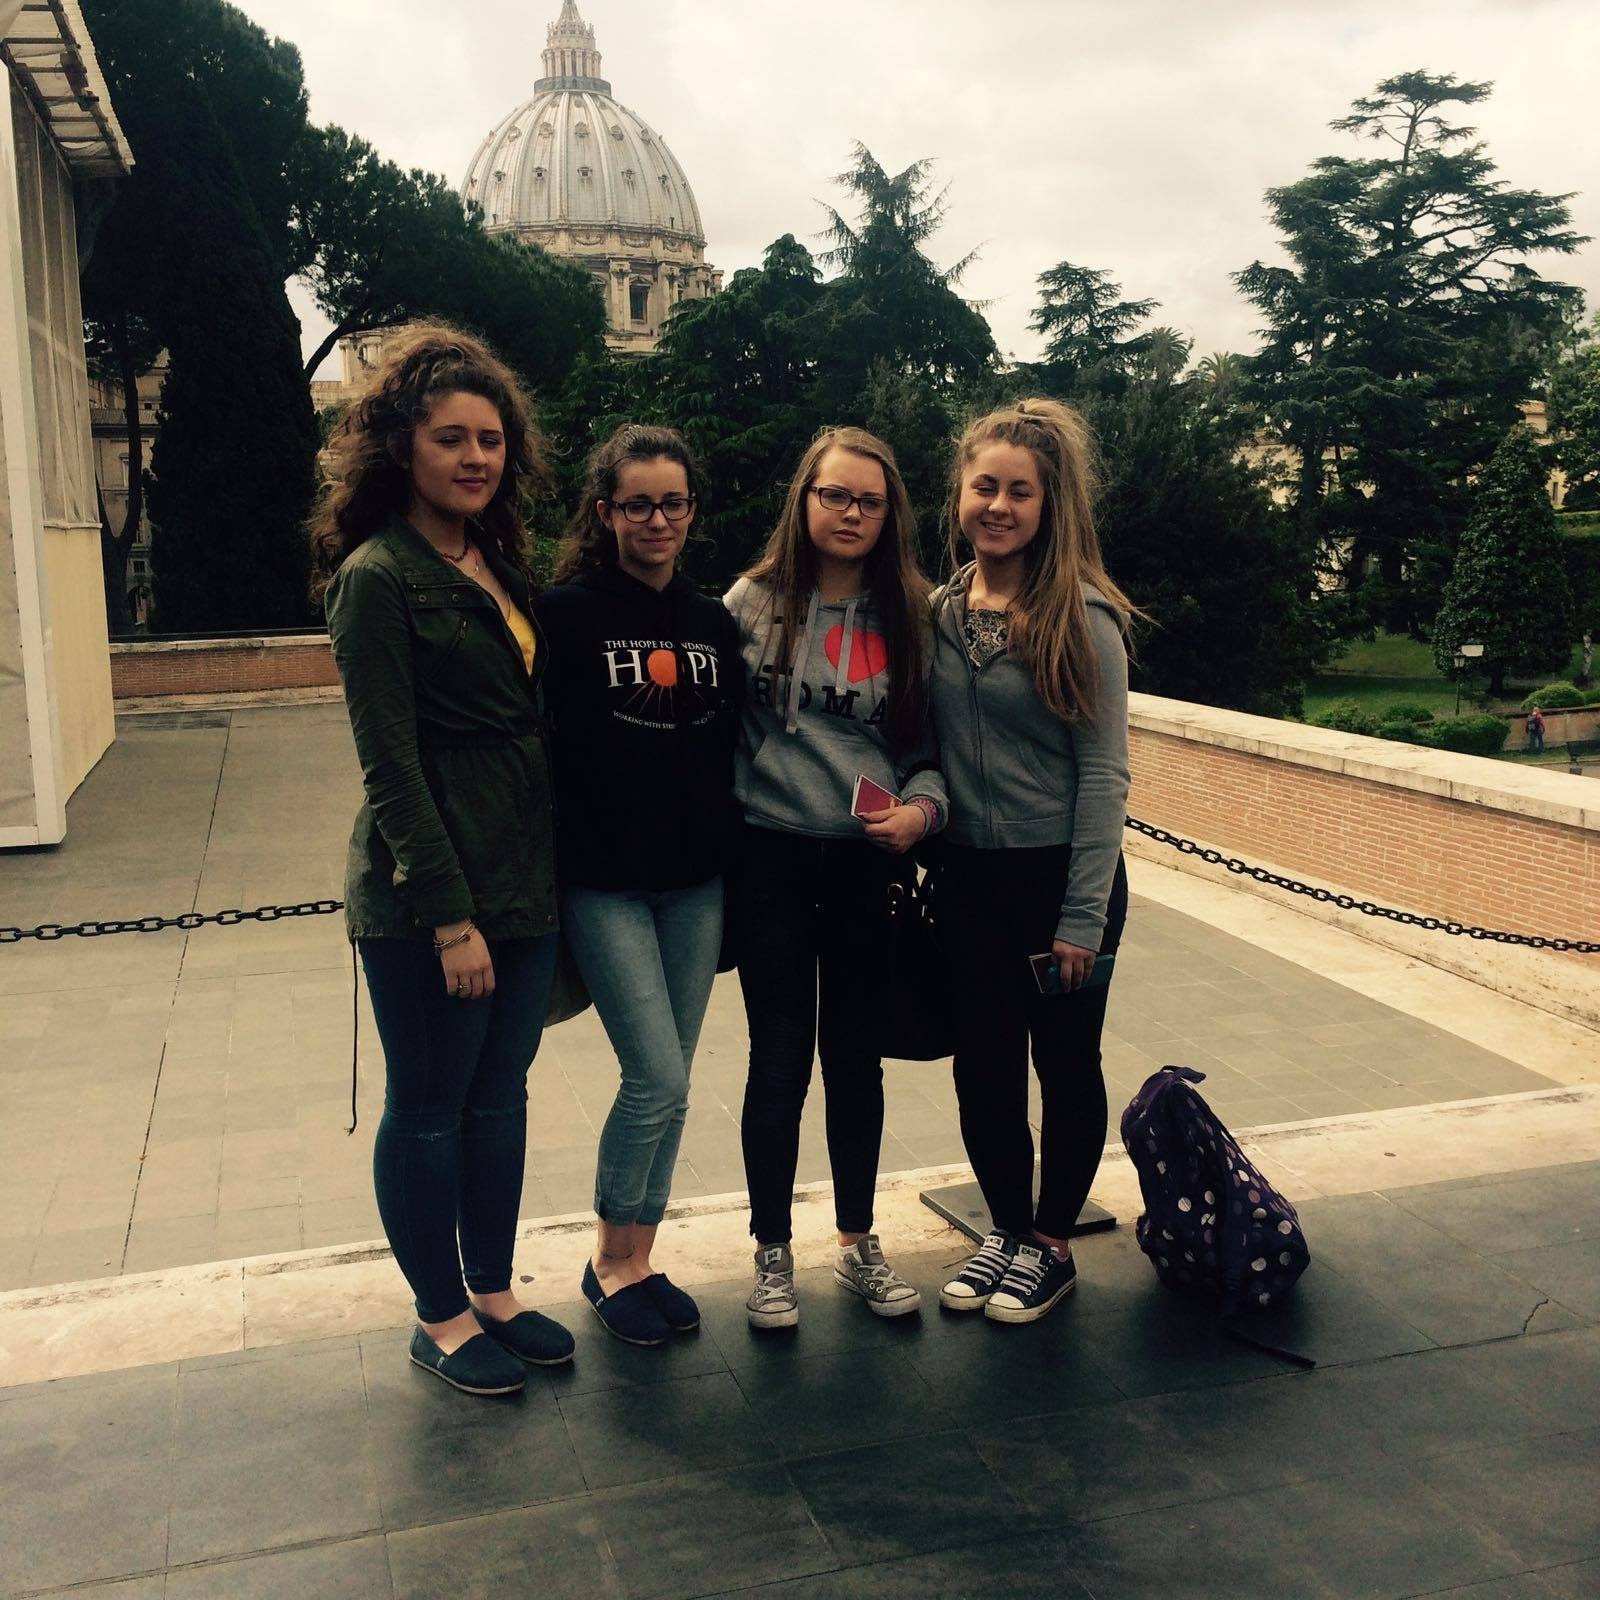 April 2016: Desmond College TYs visiting the Vatican, the Trevi Fountain, the Spanish Steps, and the Colosseum in Rome